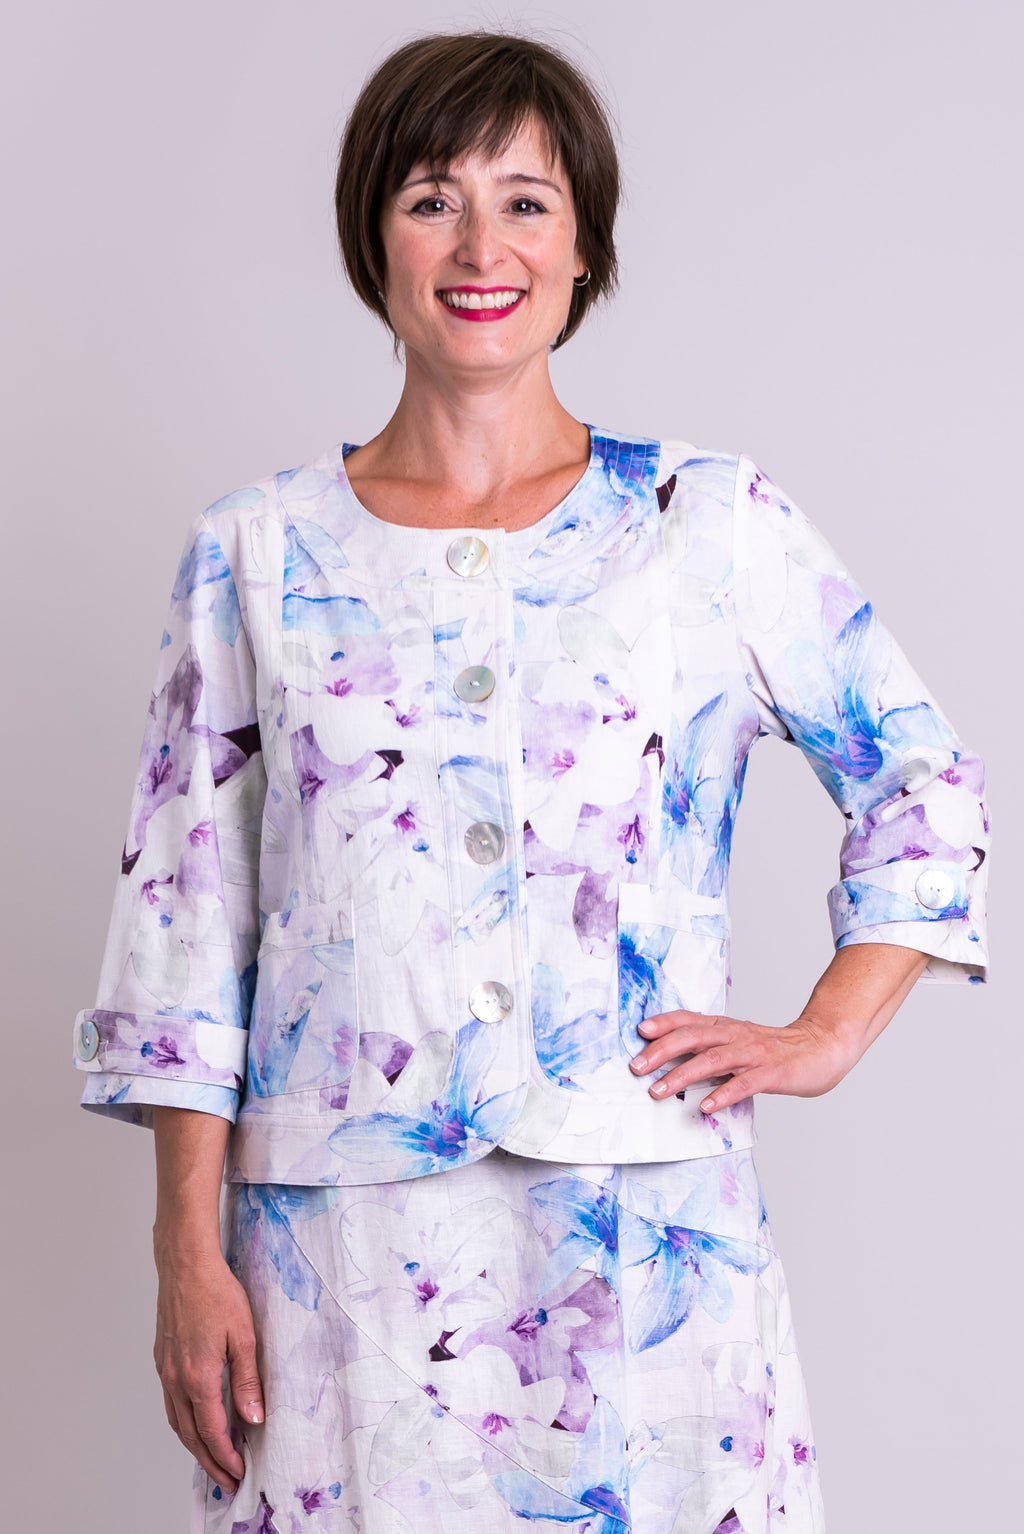 Savannah Jacket, Valley Lilies, Linen Viscose - Blue Sky Clothing Co